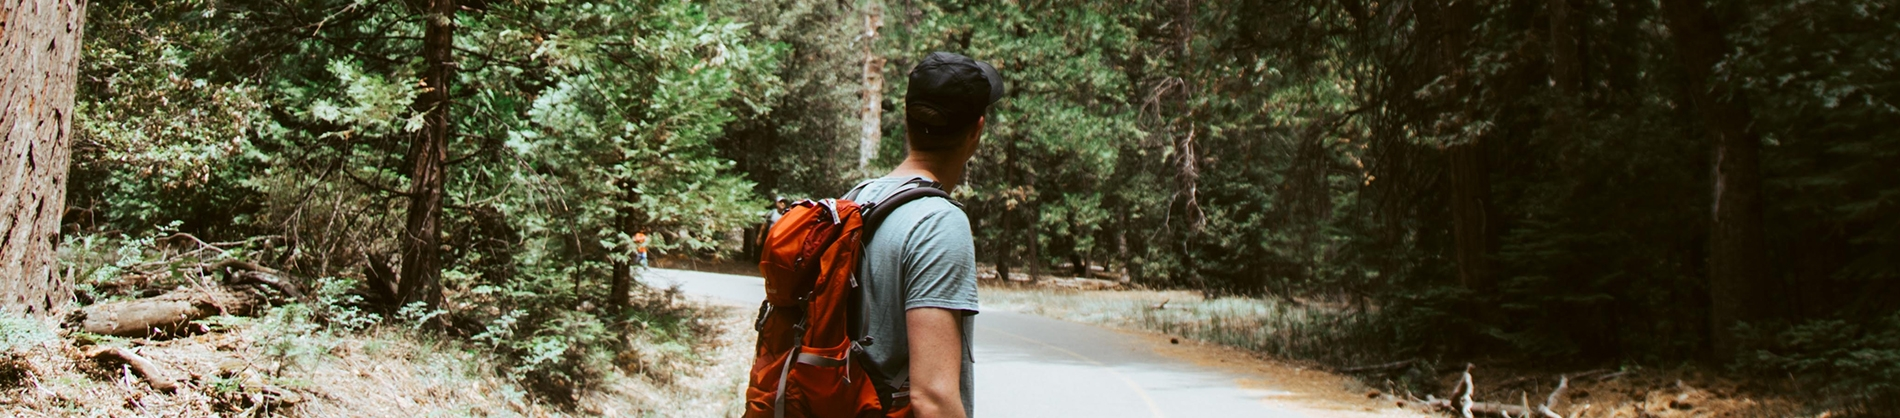 A man wearing a rucksack looking back on a road leading to trees